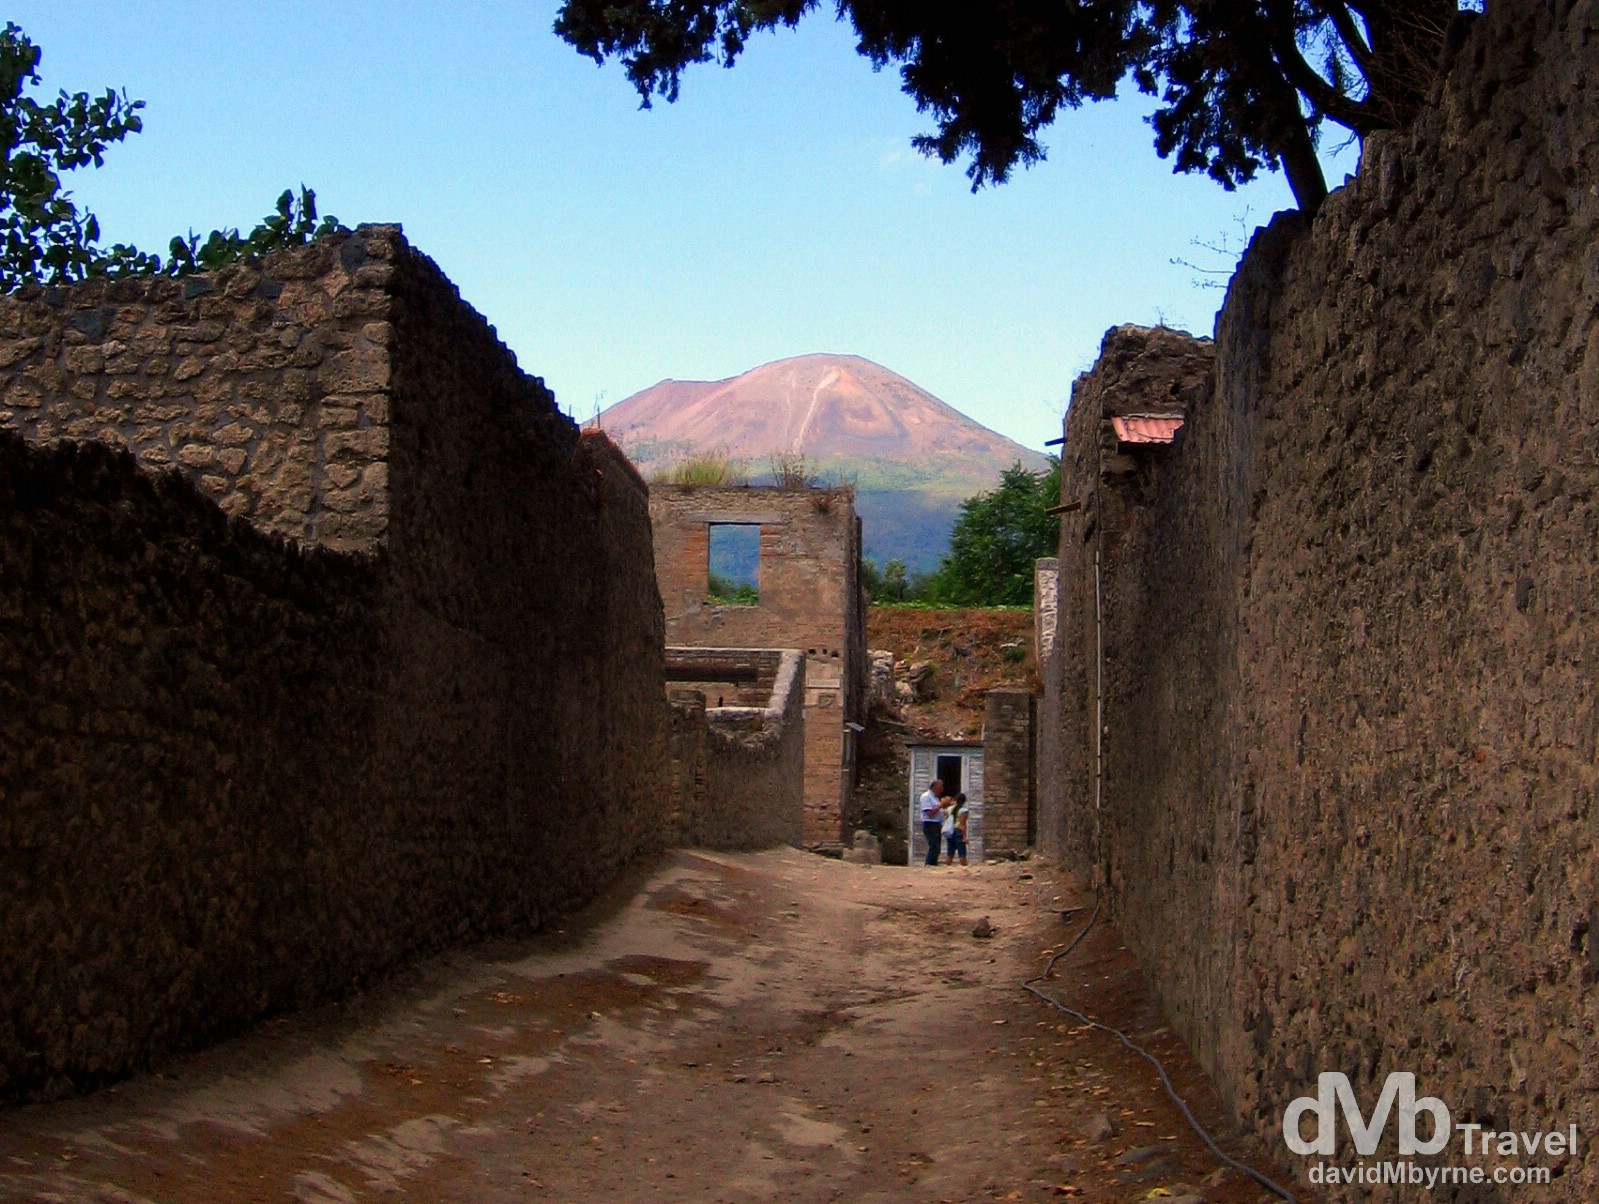 Mt. Vesuvius as seen from the streets of Pompeii, Campania, Italy. September 5th, 2007.